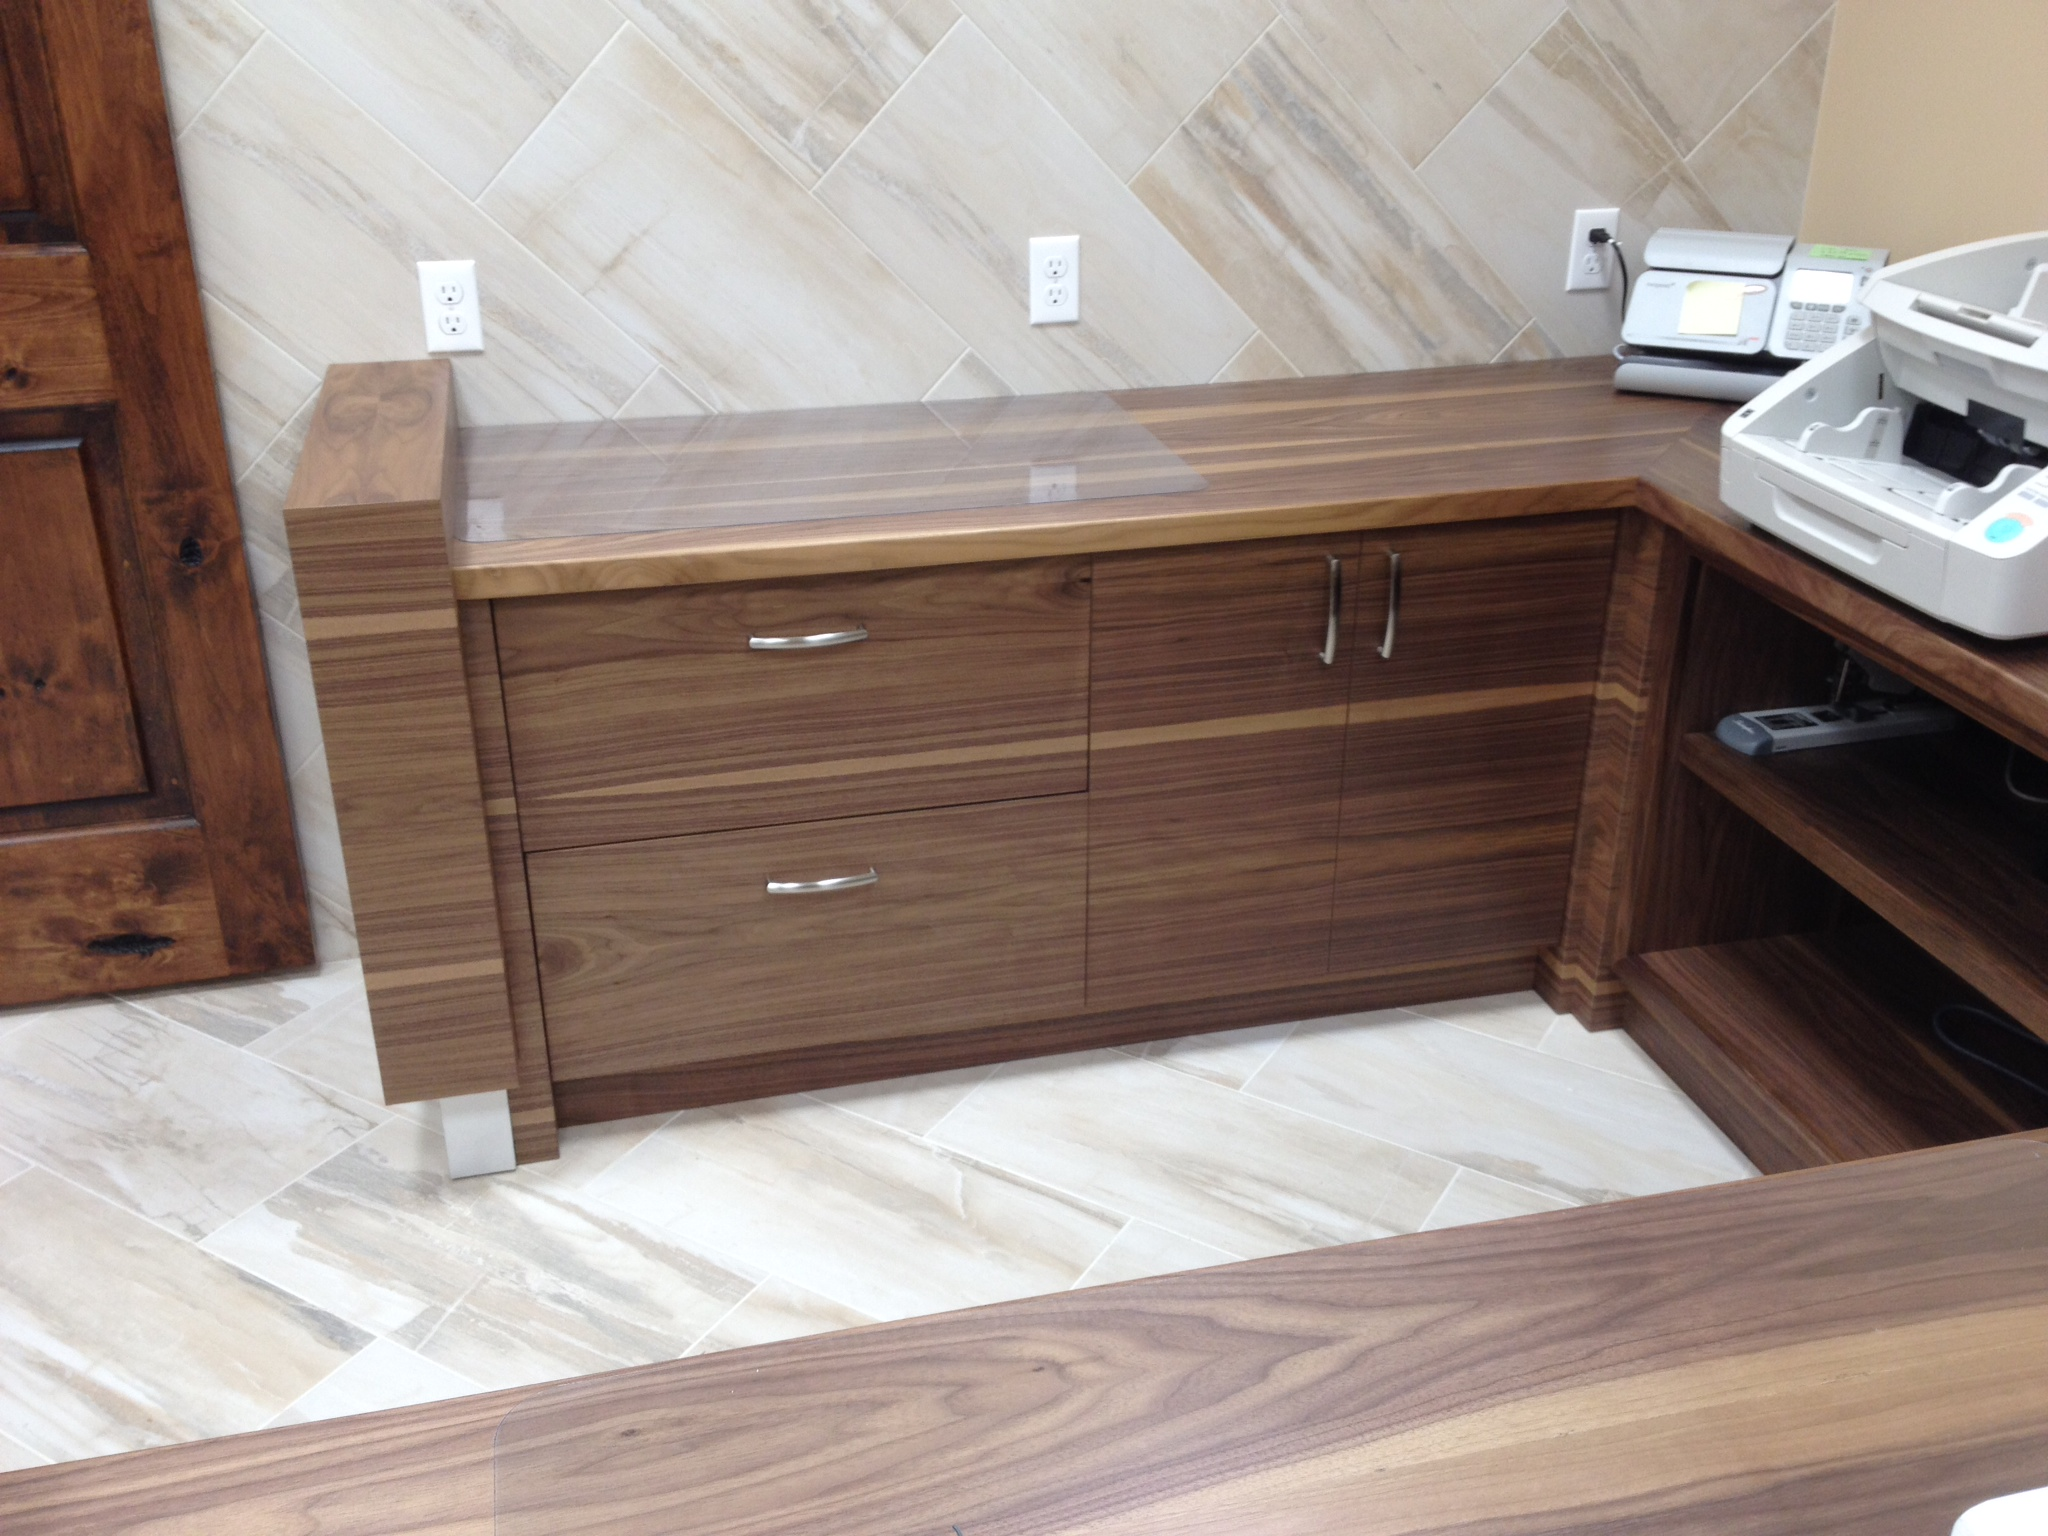 Walnut grain matched reception desk.